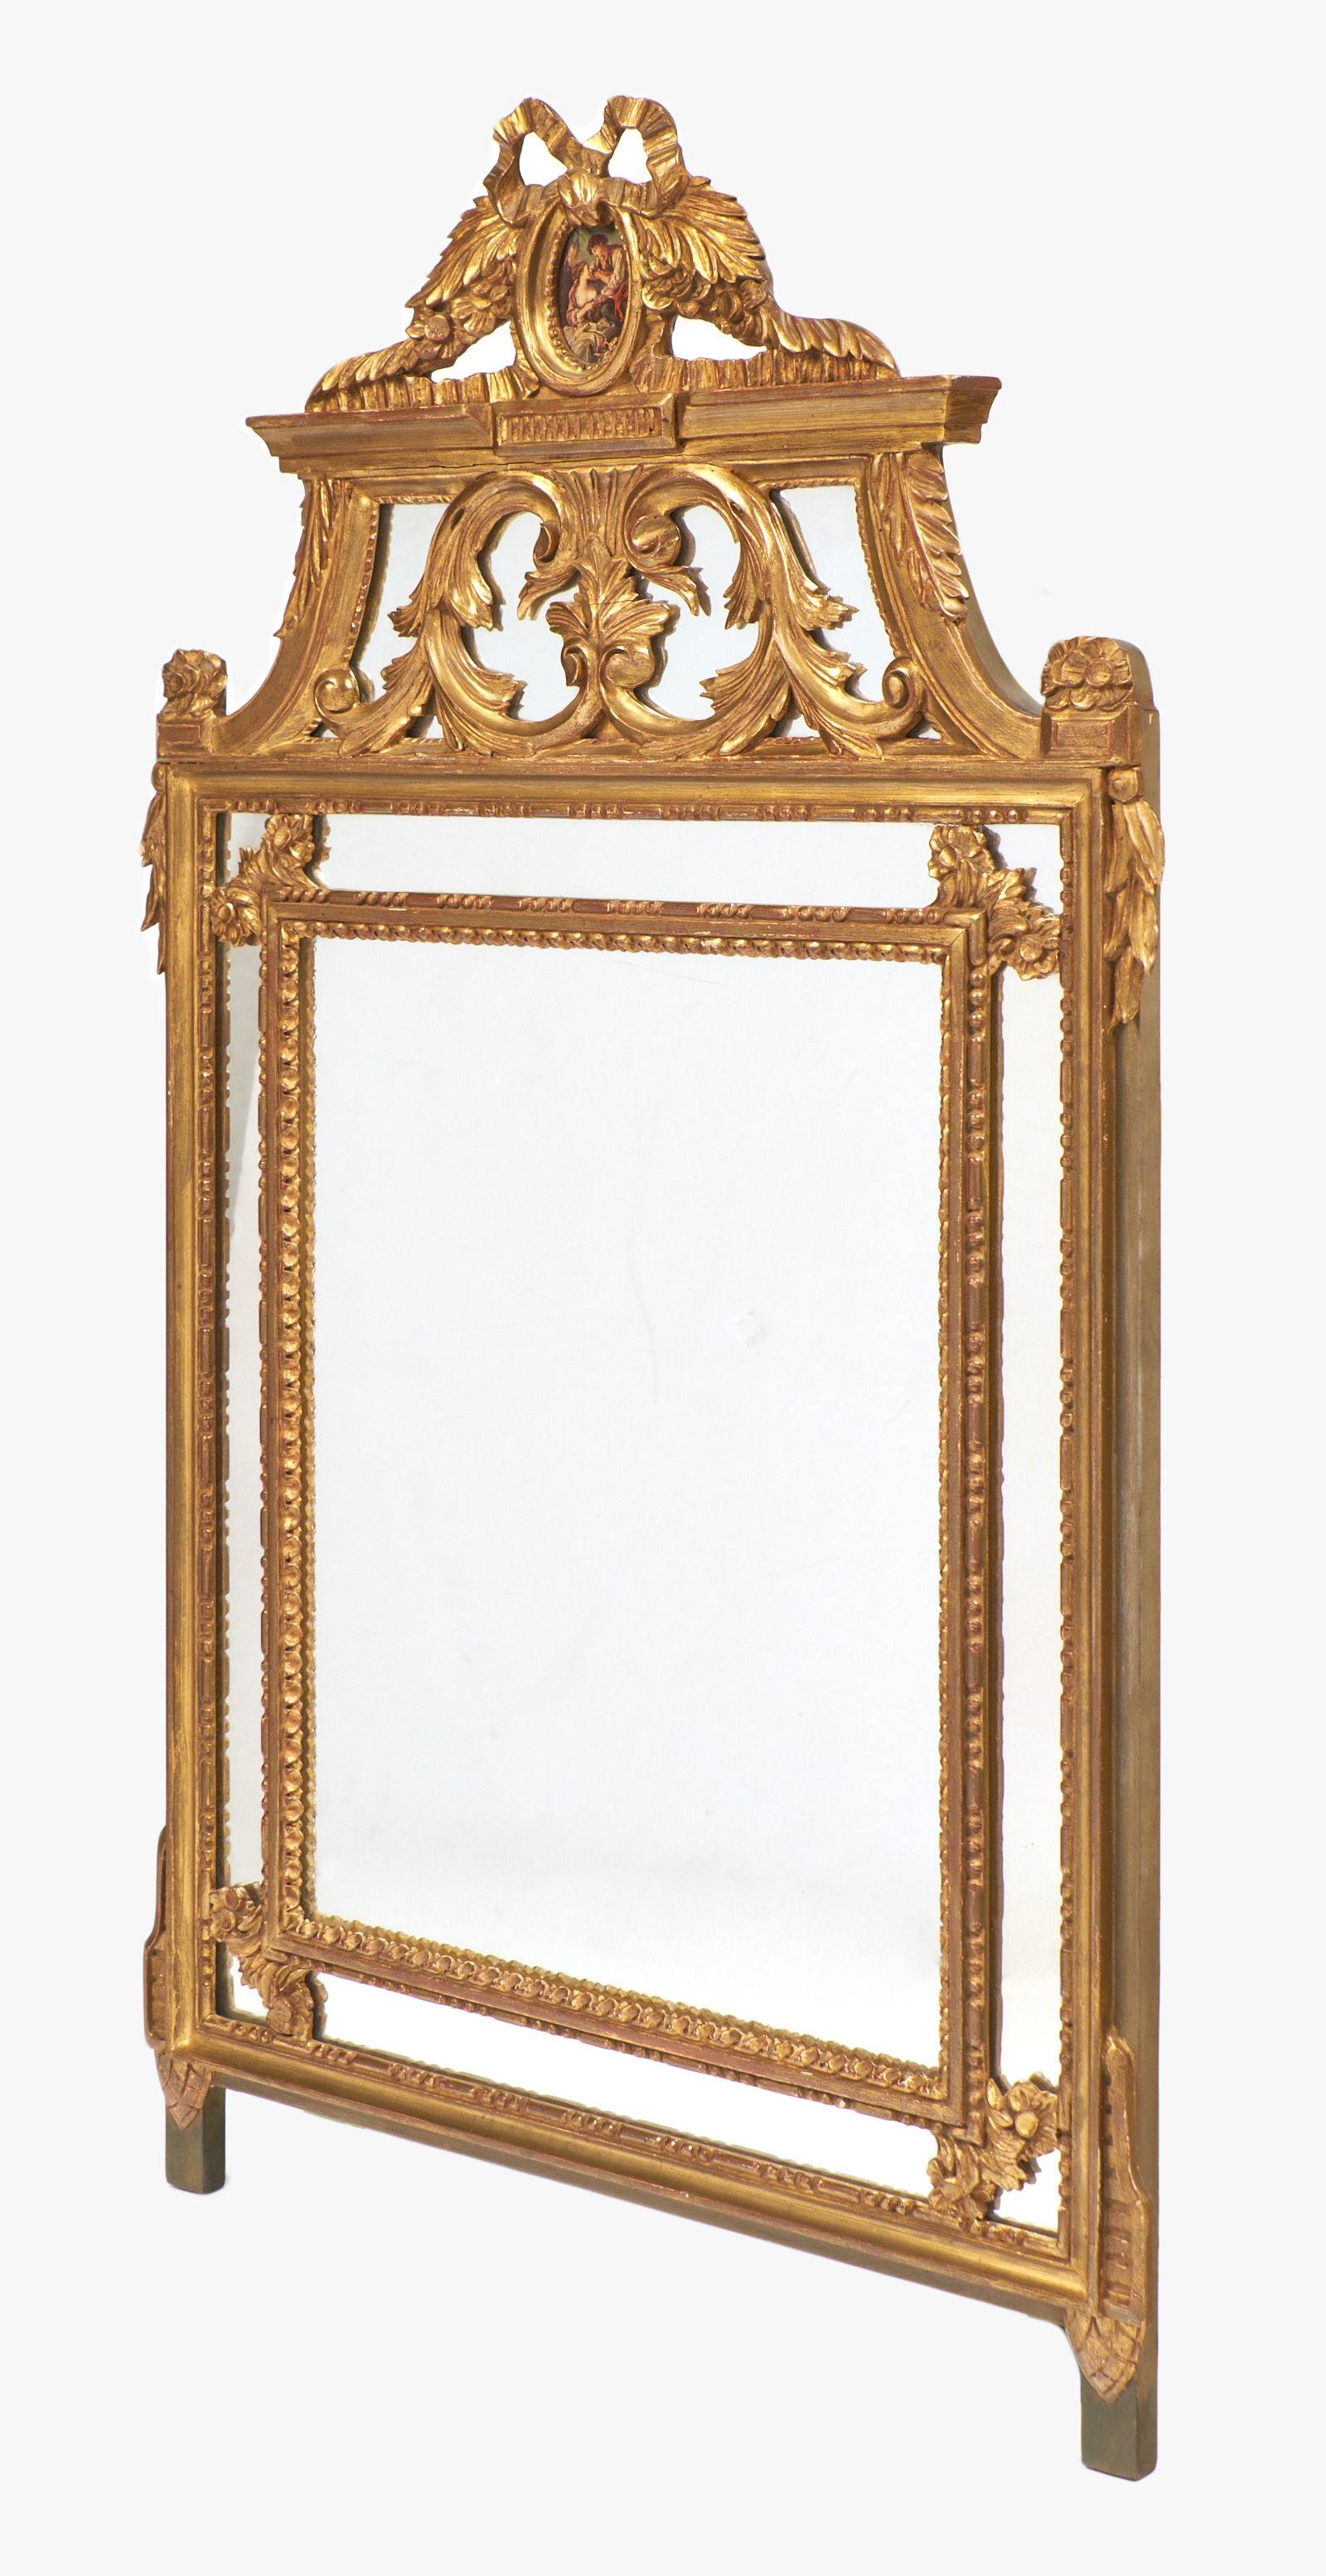 Ornate Gold Leaf Louis Xvi Mirror - Jean Marc Fray for Gold Ornate Mirrors (Image 16 of 25)